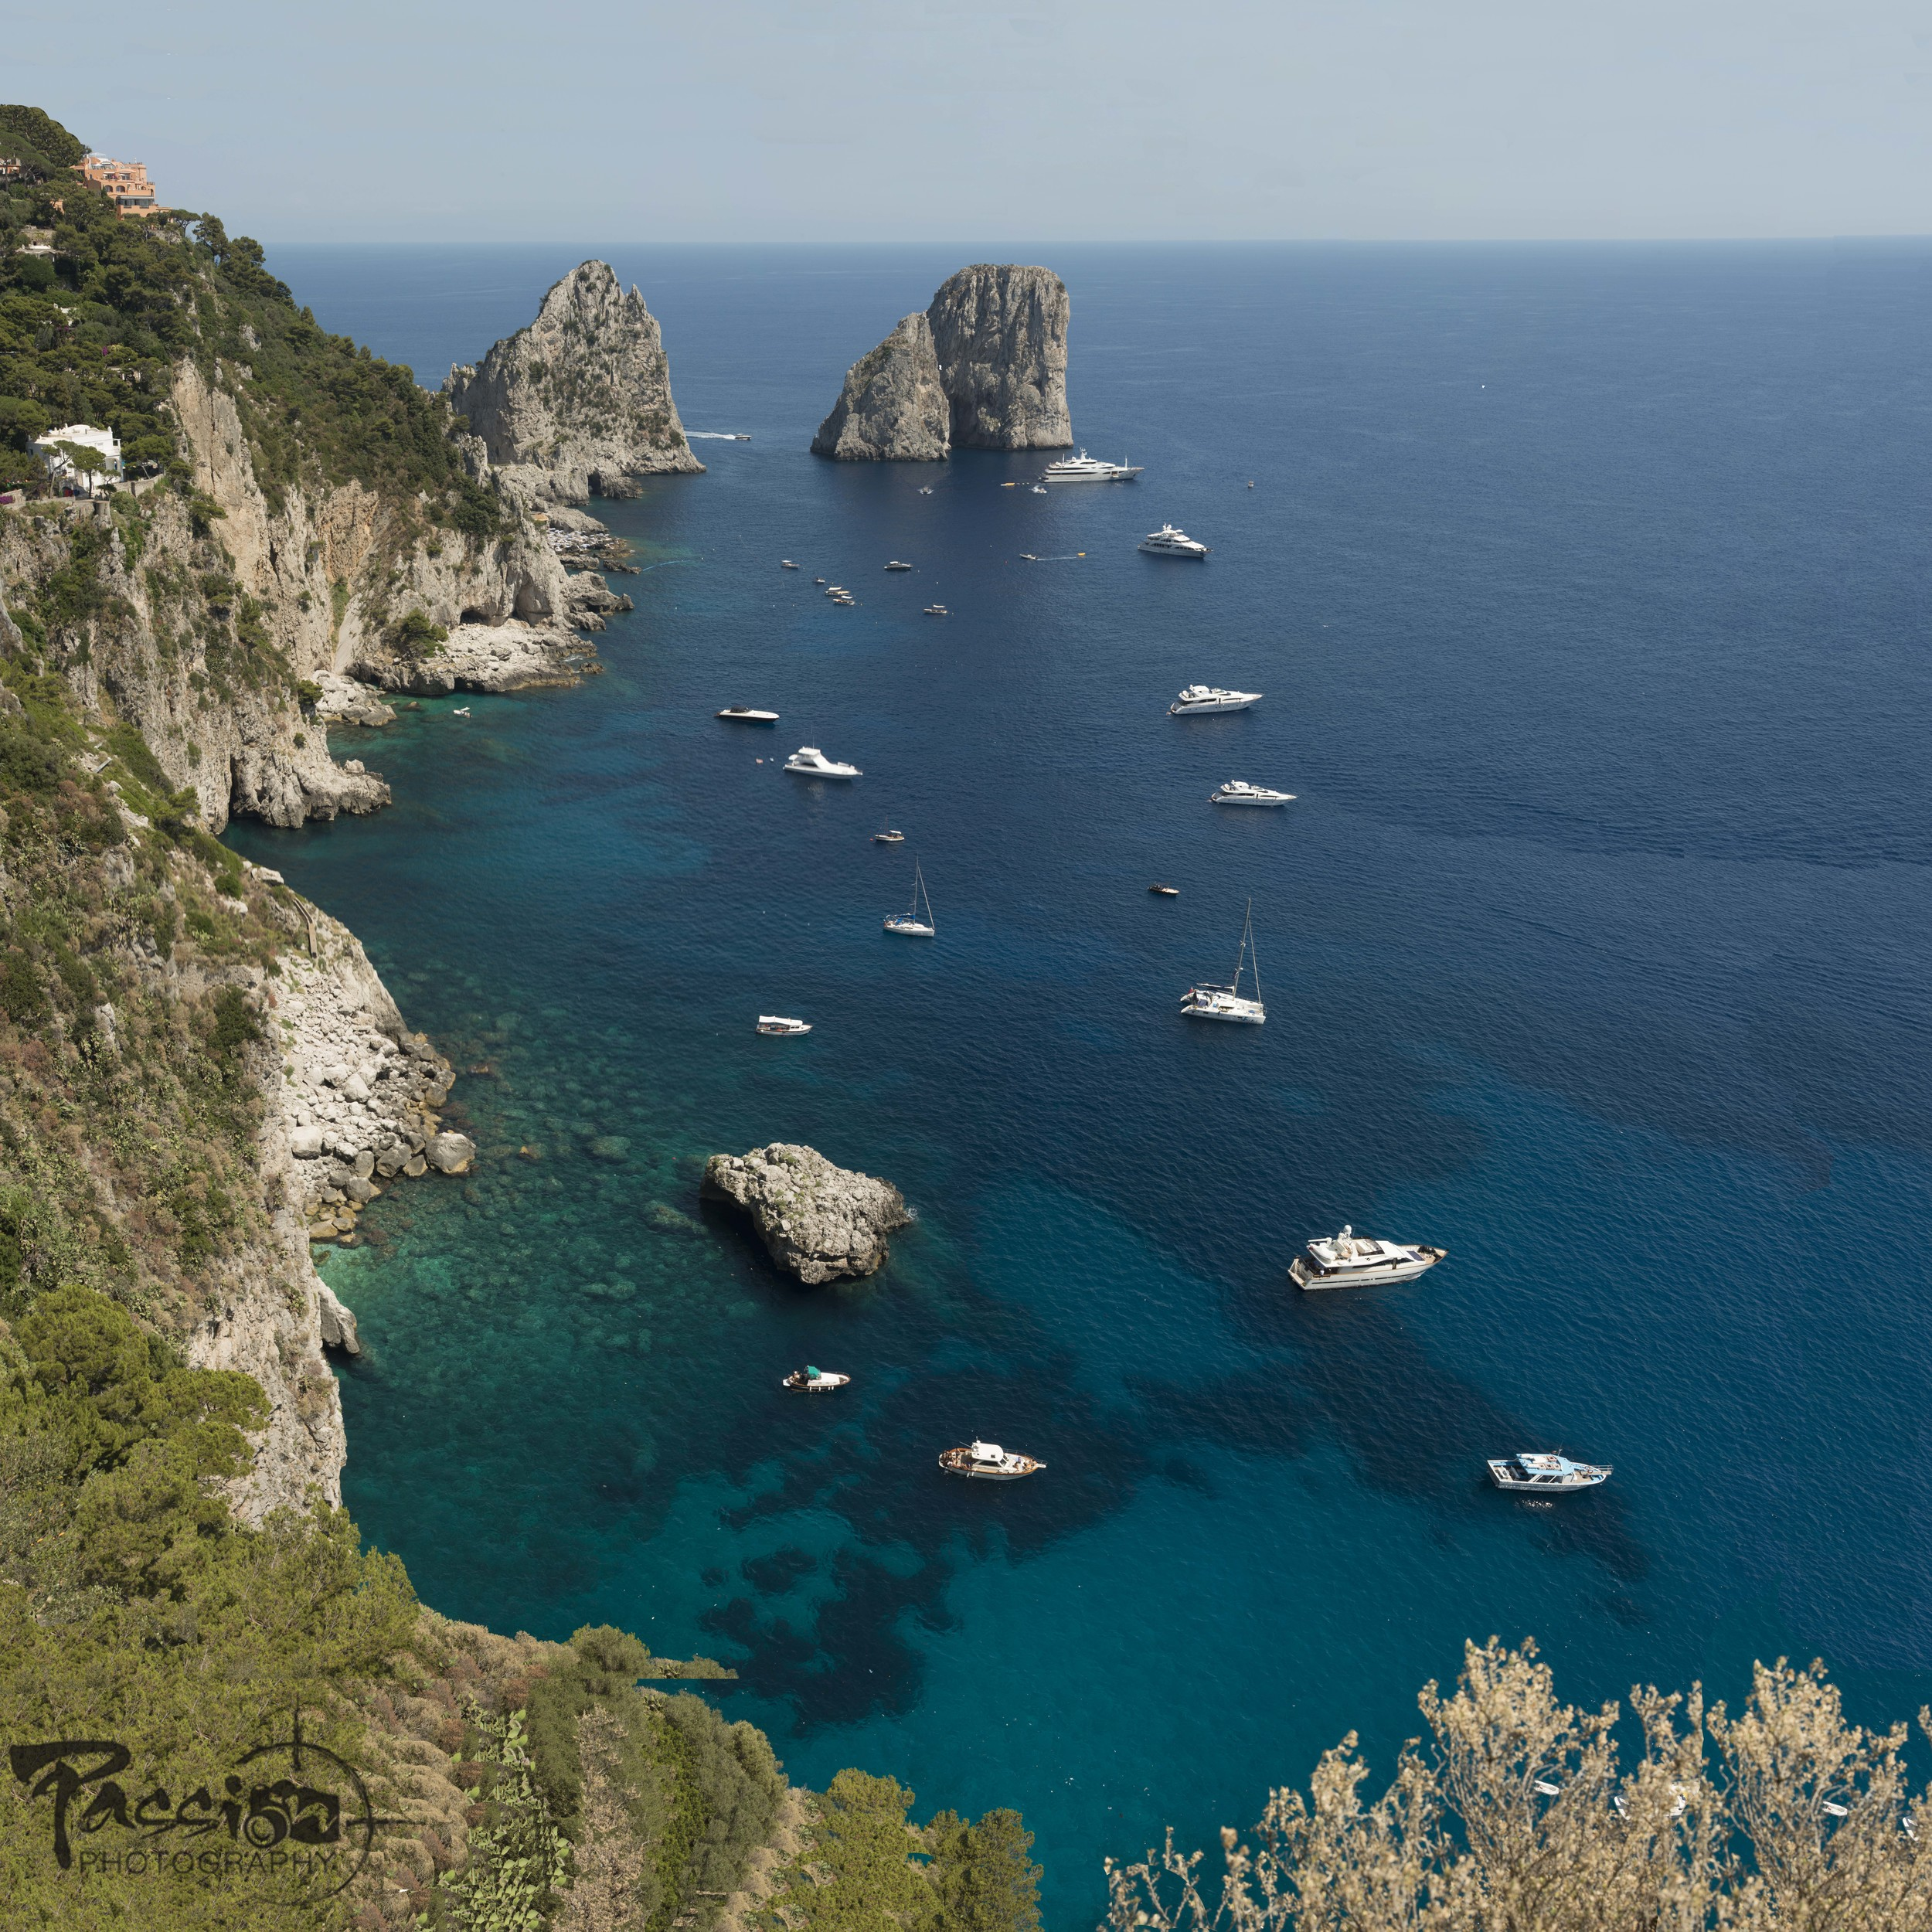 The Isle of Capri steep inviting coastline